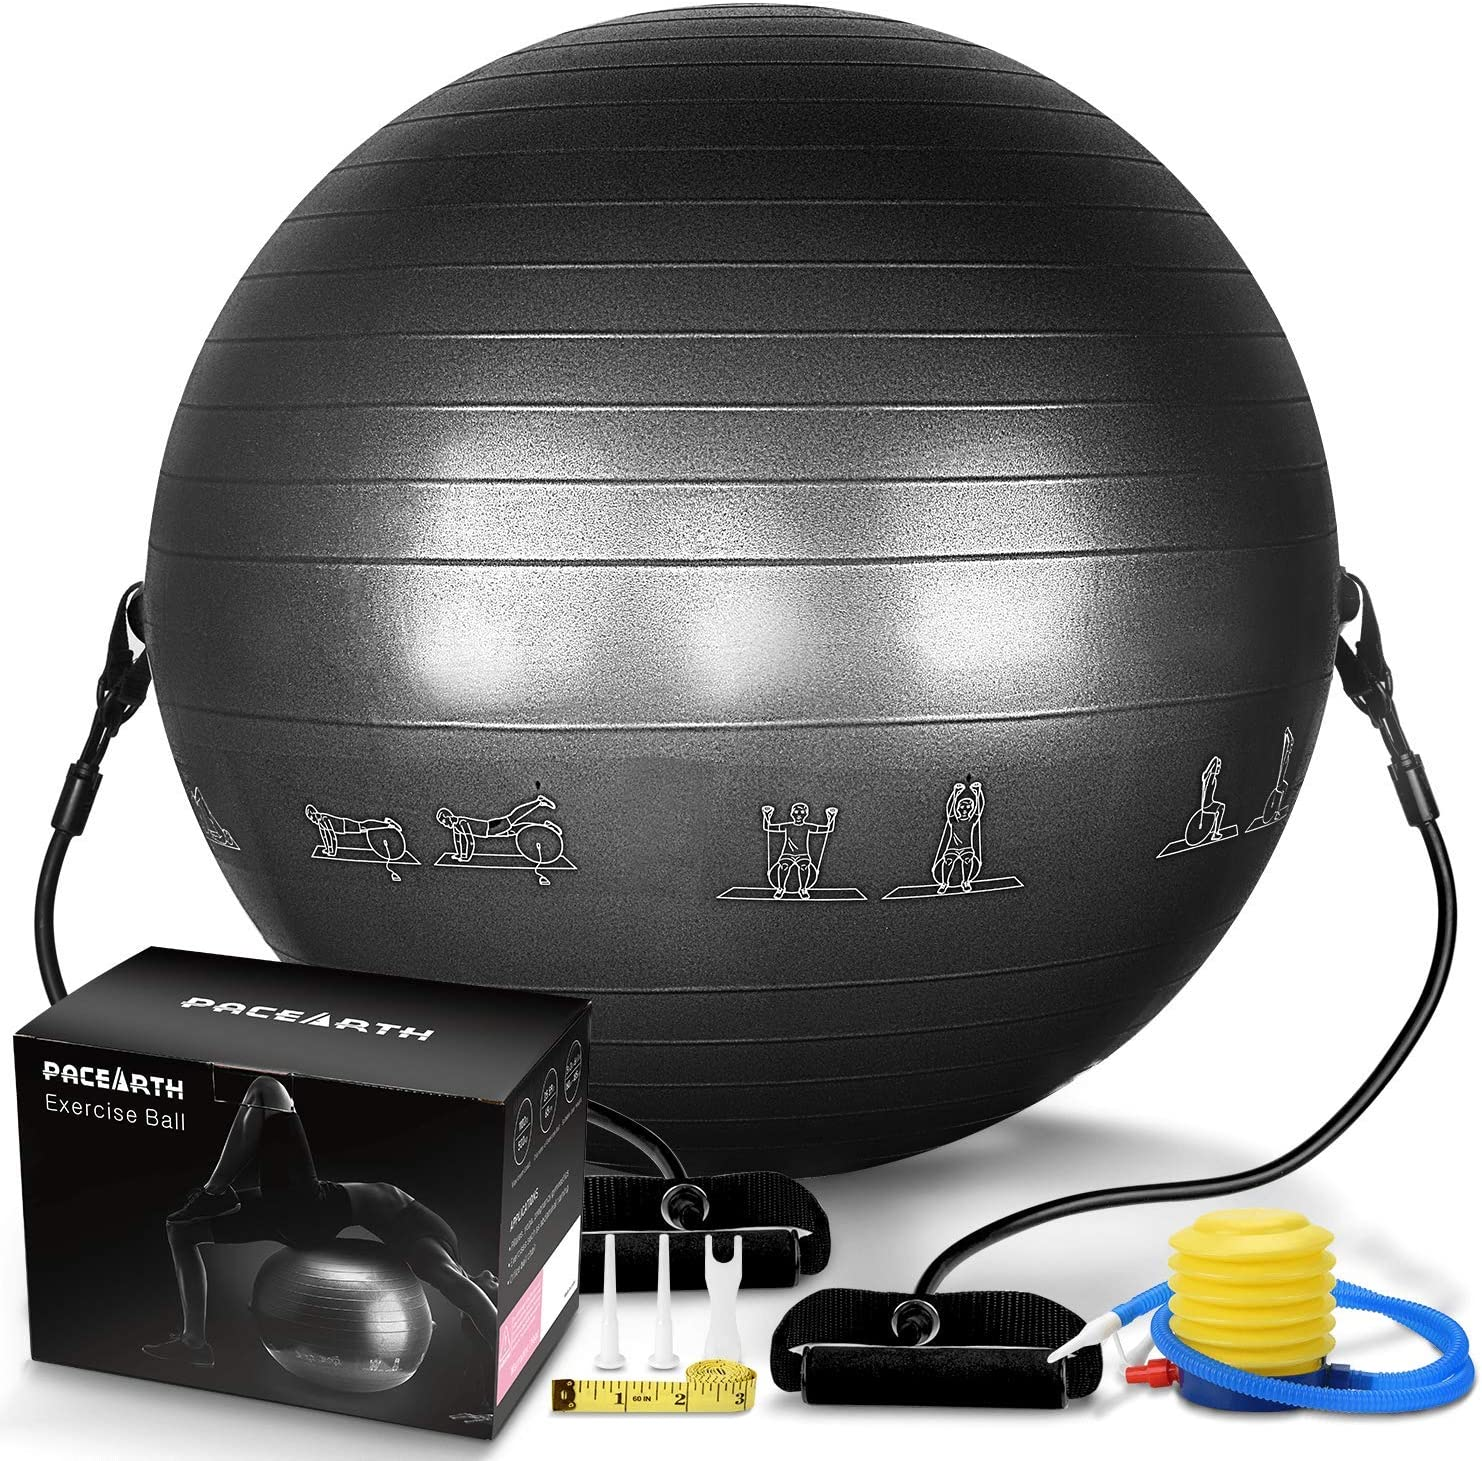 PACEARTH Exercise Ball for Yoga Stability Fitness Balance Birthing Workout Ball Chair with Quick Pump and Resistance Bands for Office,Home,Gym (Black)